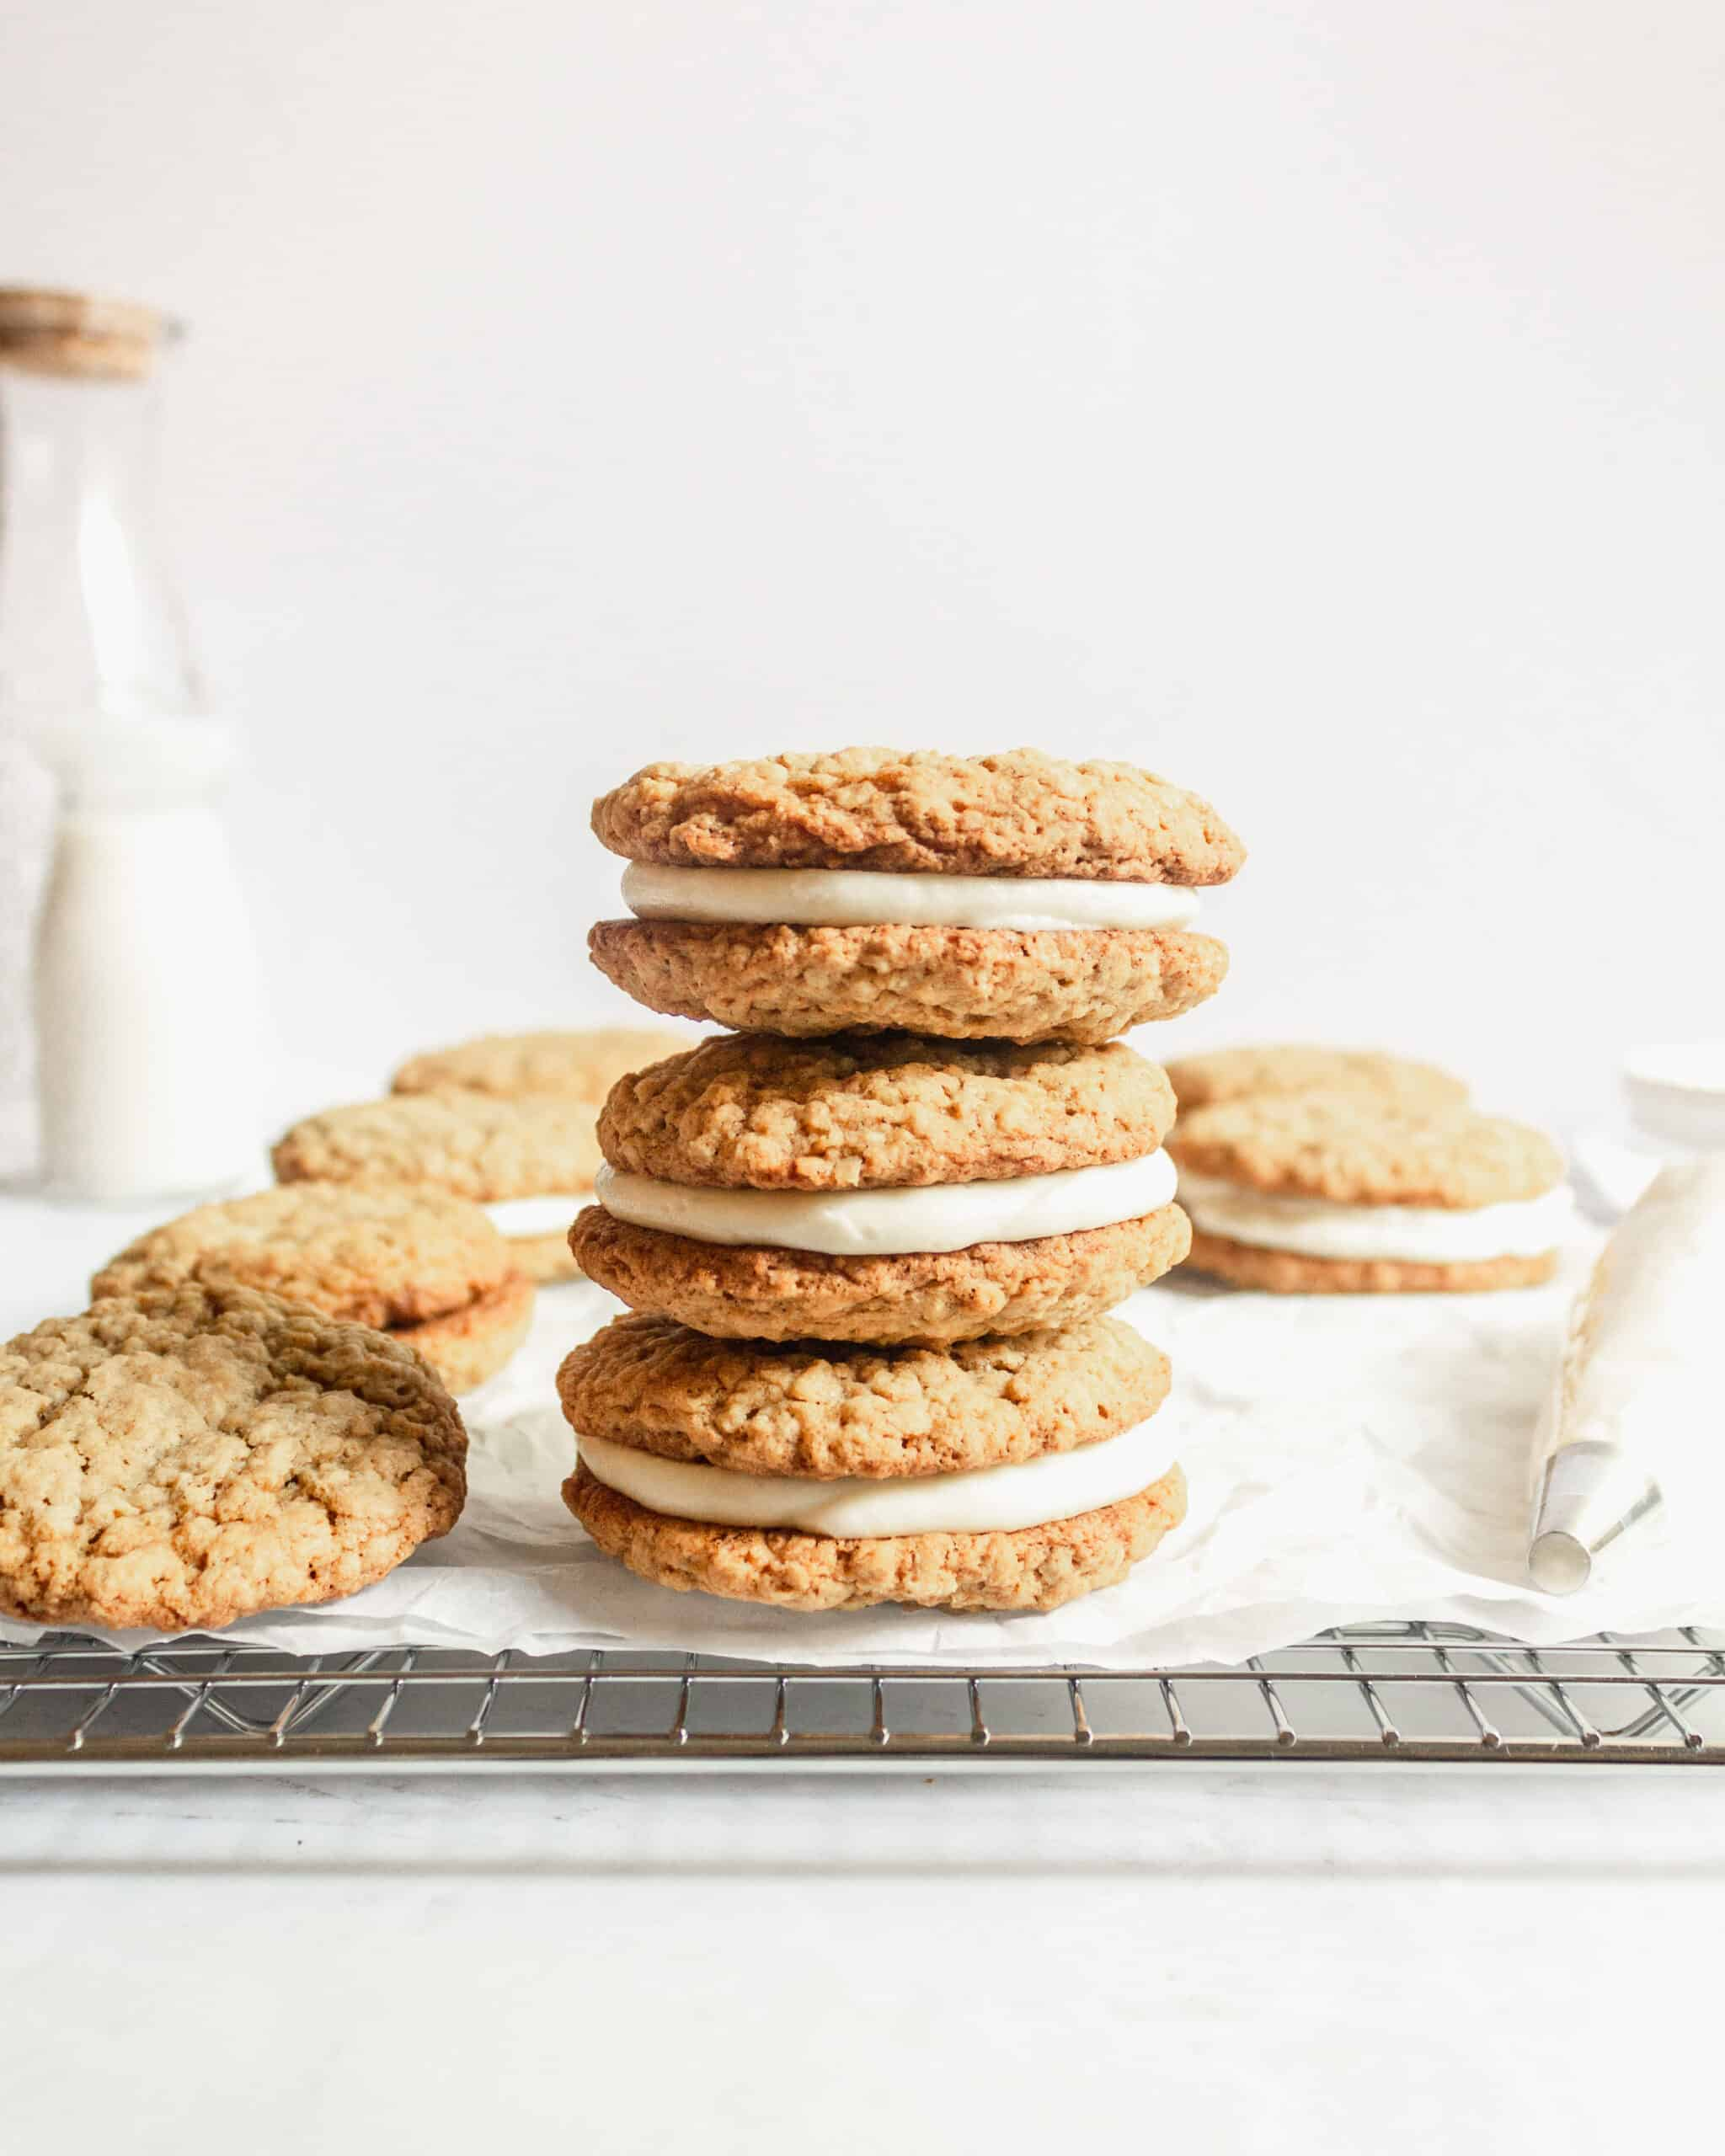 a stack of 3 oatmeal creme pies with cookies on the side and a piping bag of buttercream next to it.